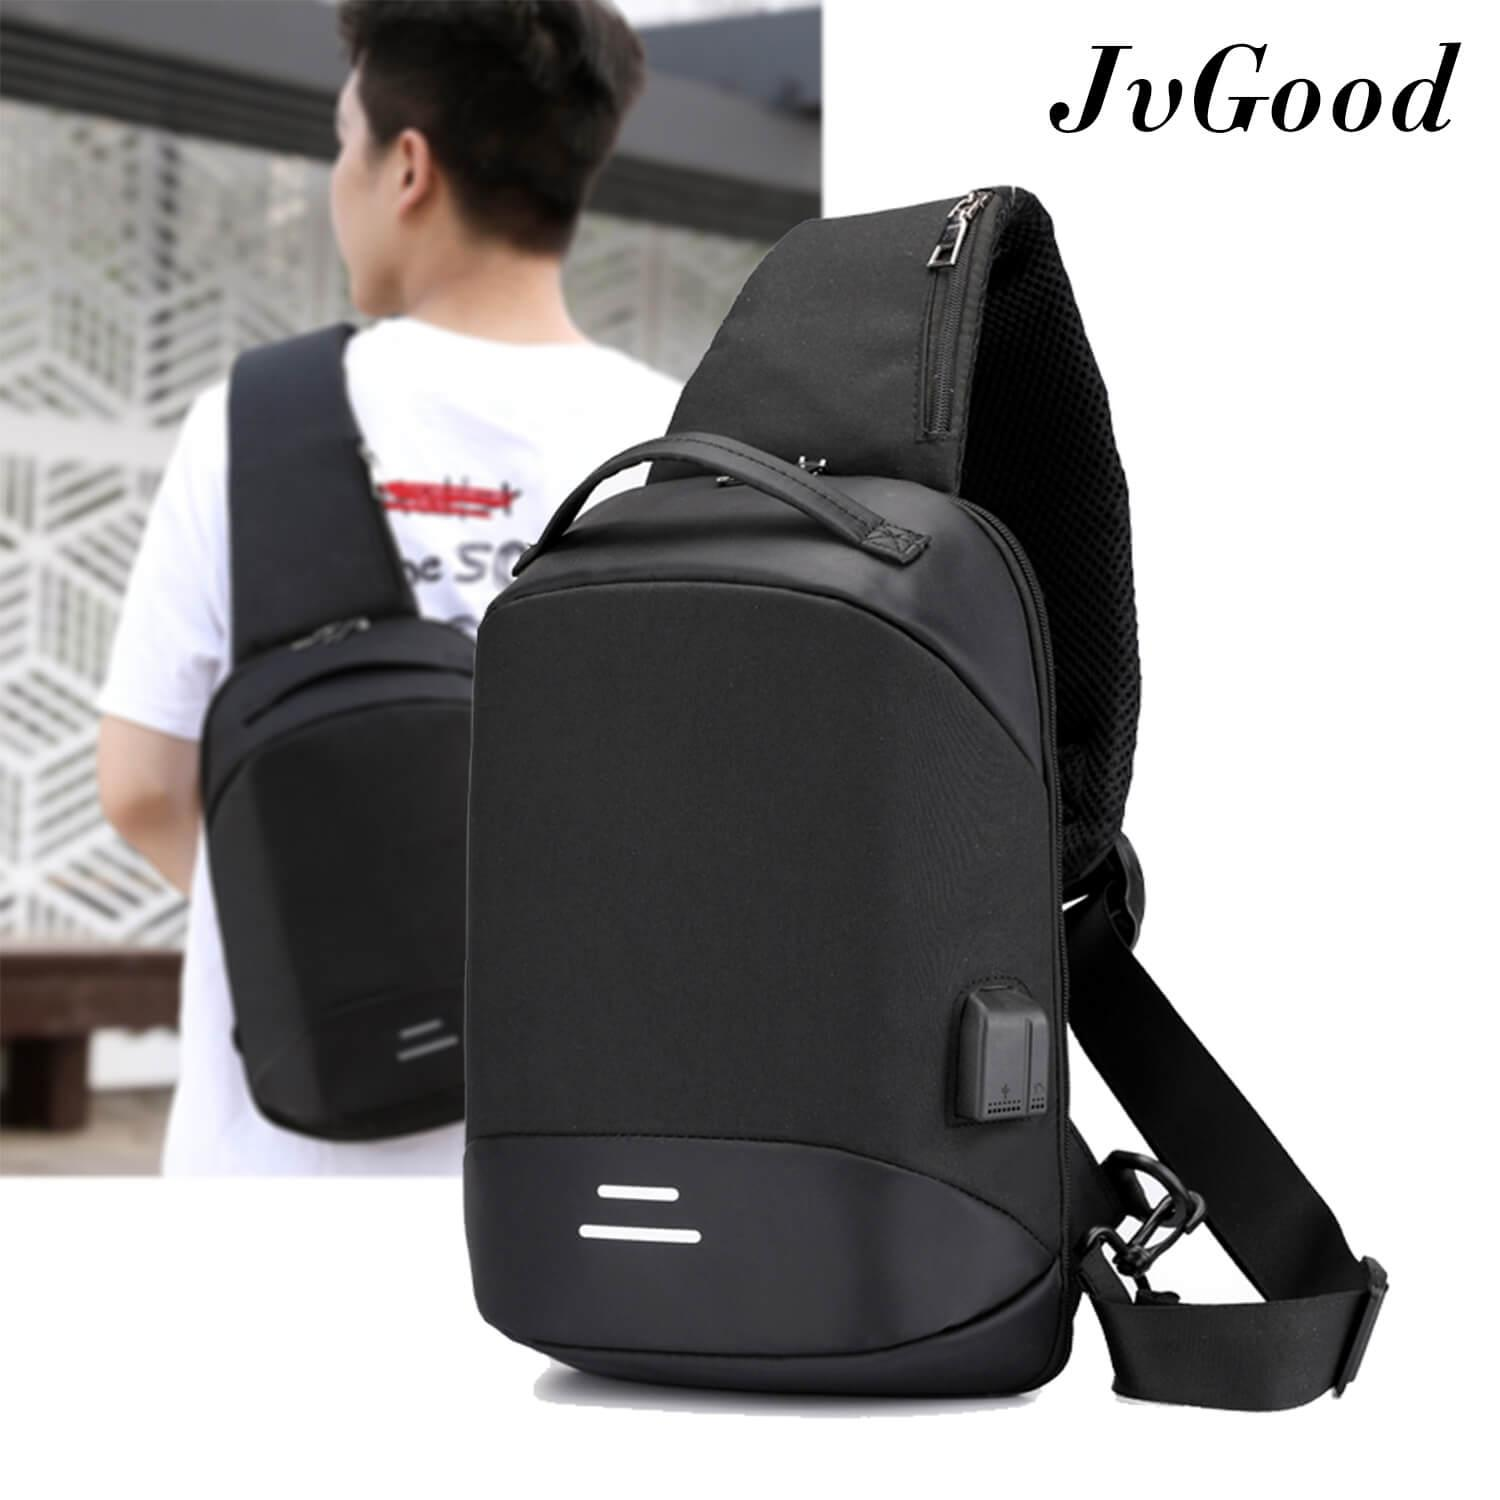 8a739c11da0d JvGood Crossbody Bag Anti Theft Chest Bag USB Charging Sling bag  Lightweight Daypack Casual Backpack Canvas